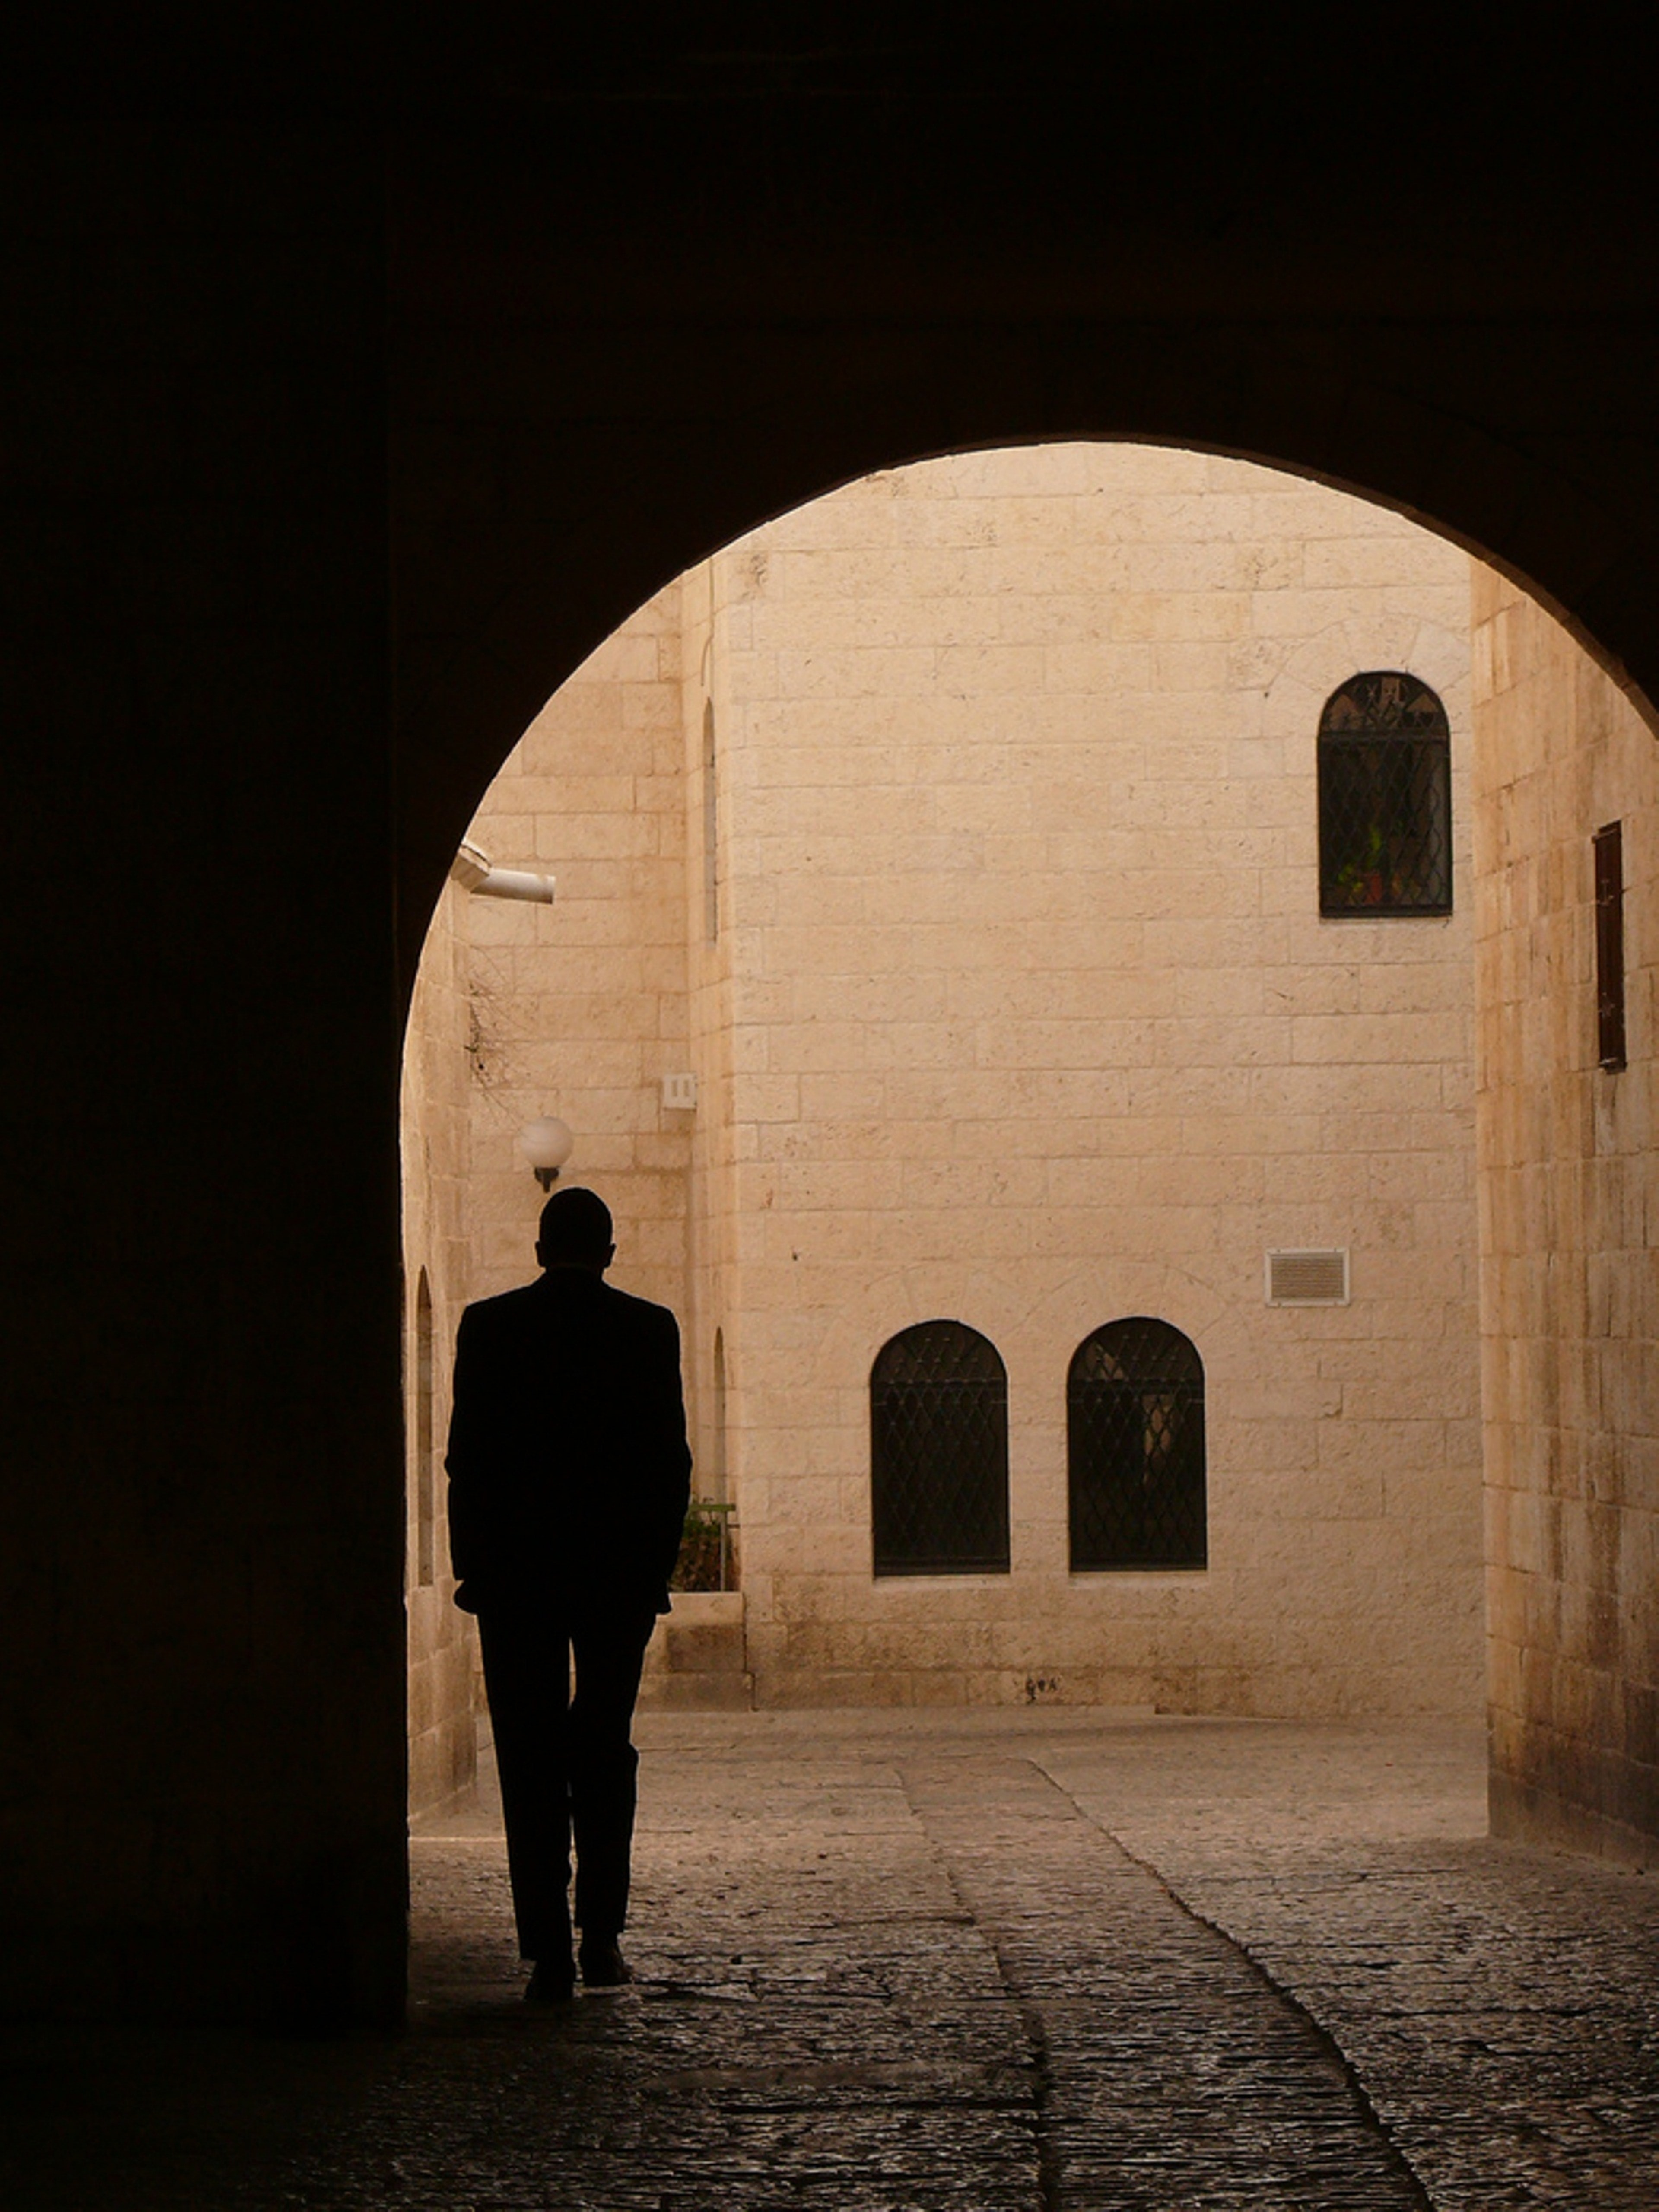 silhouette of person walking on narrow pathway